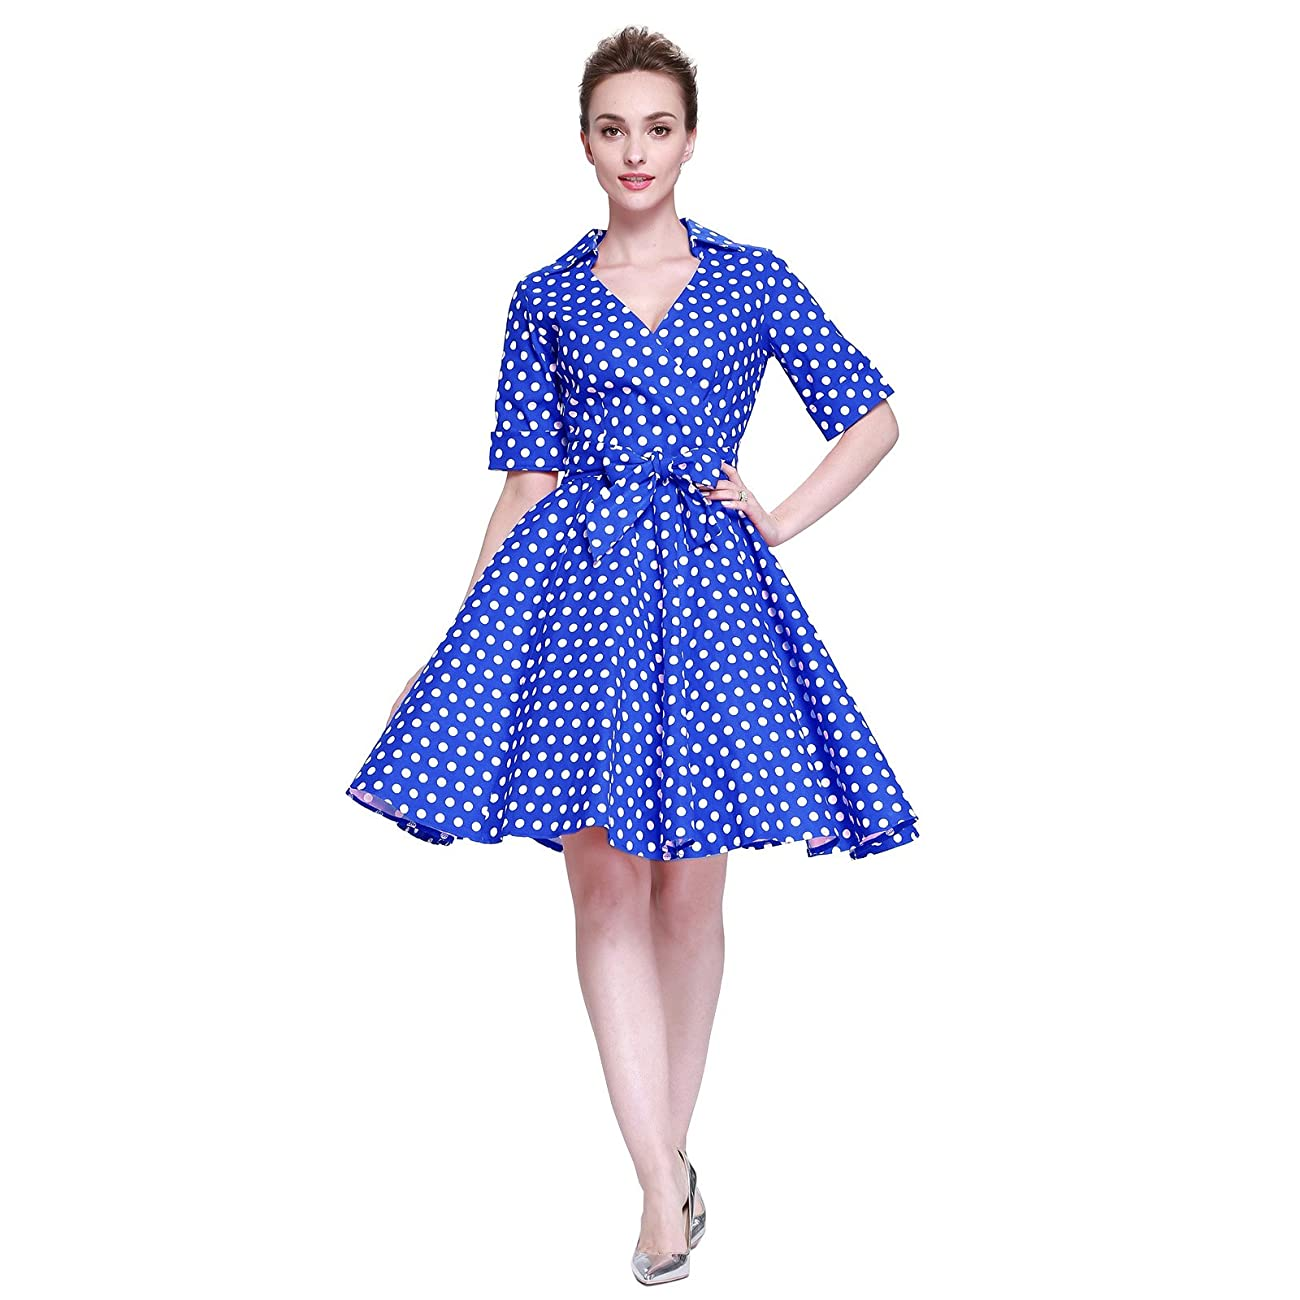 Heroecol Womens Vintage 1950s Dresses Cross V Neck Short Sleeve 50s 60s Style Retro Swing Cotton Dress 0